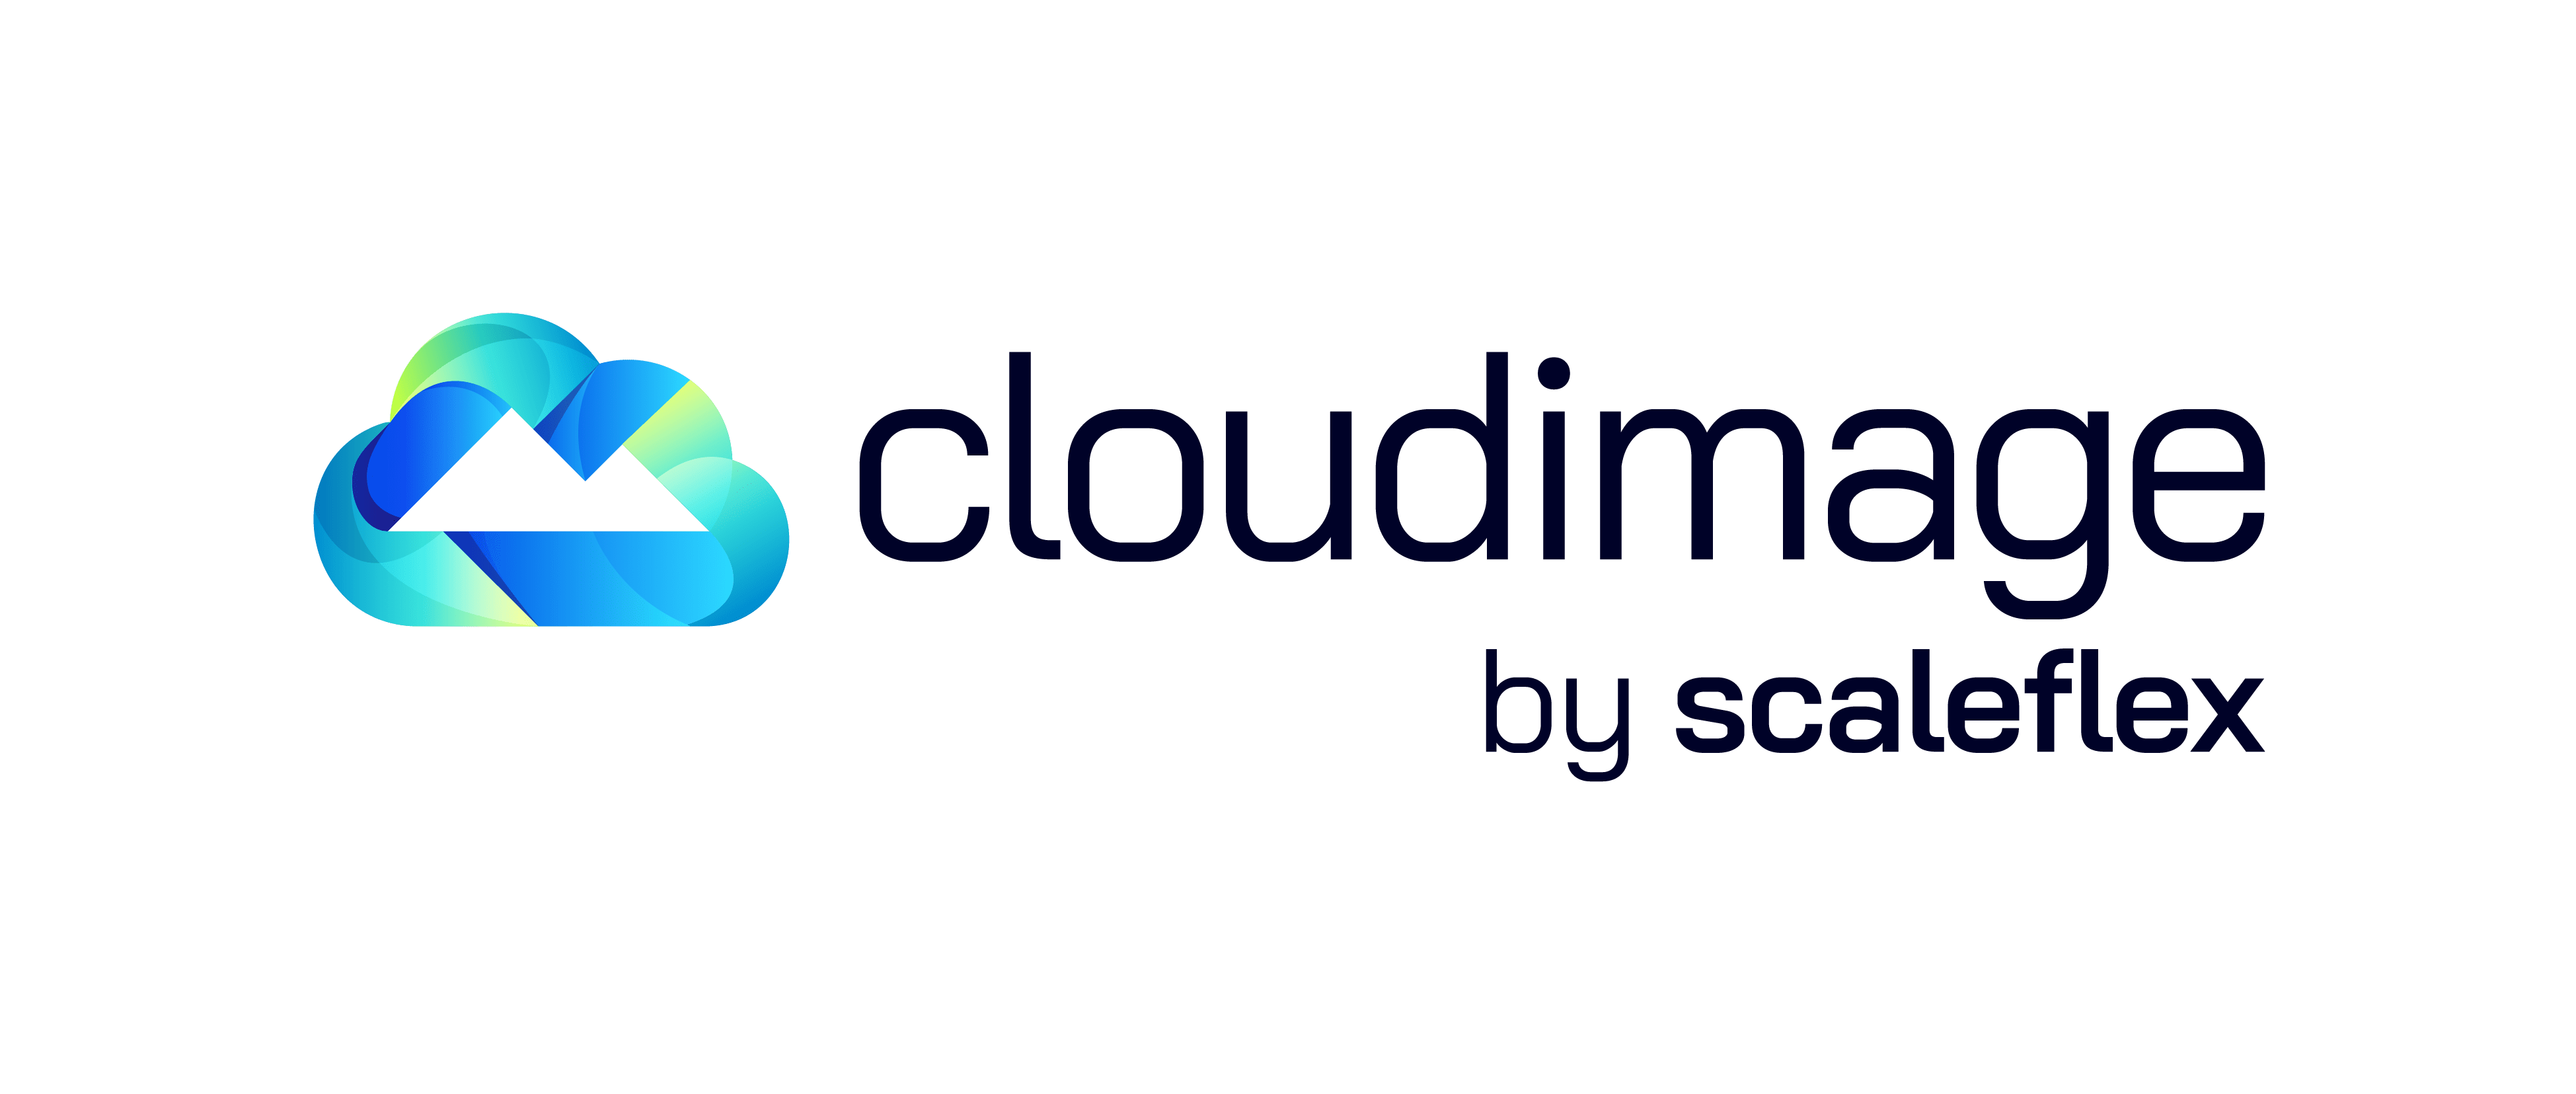 Have you ever left a website or app because it was too slow to load? Have you ever struggled with optimizing your website's or app's images to serve multiple form factors?<​cloudimage.io /> makes image resizing and rocket-fast delivery super easy! Our Cloud-based image management solution allows you to generate multiple formats on-the-fly and reach your end users via global CDNs. <​cloudimage.io /> is the easiest Responsive-Images-as-A-Service solution! No more wasted time with image management for your developers, no more waiting for your users, more revenue for you, more happiness for your customers!